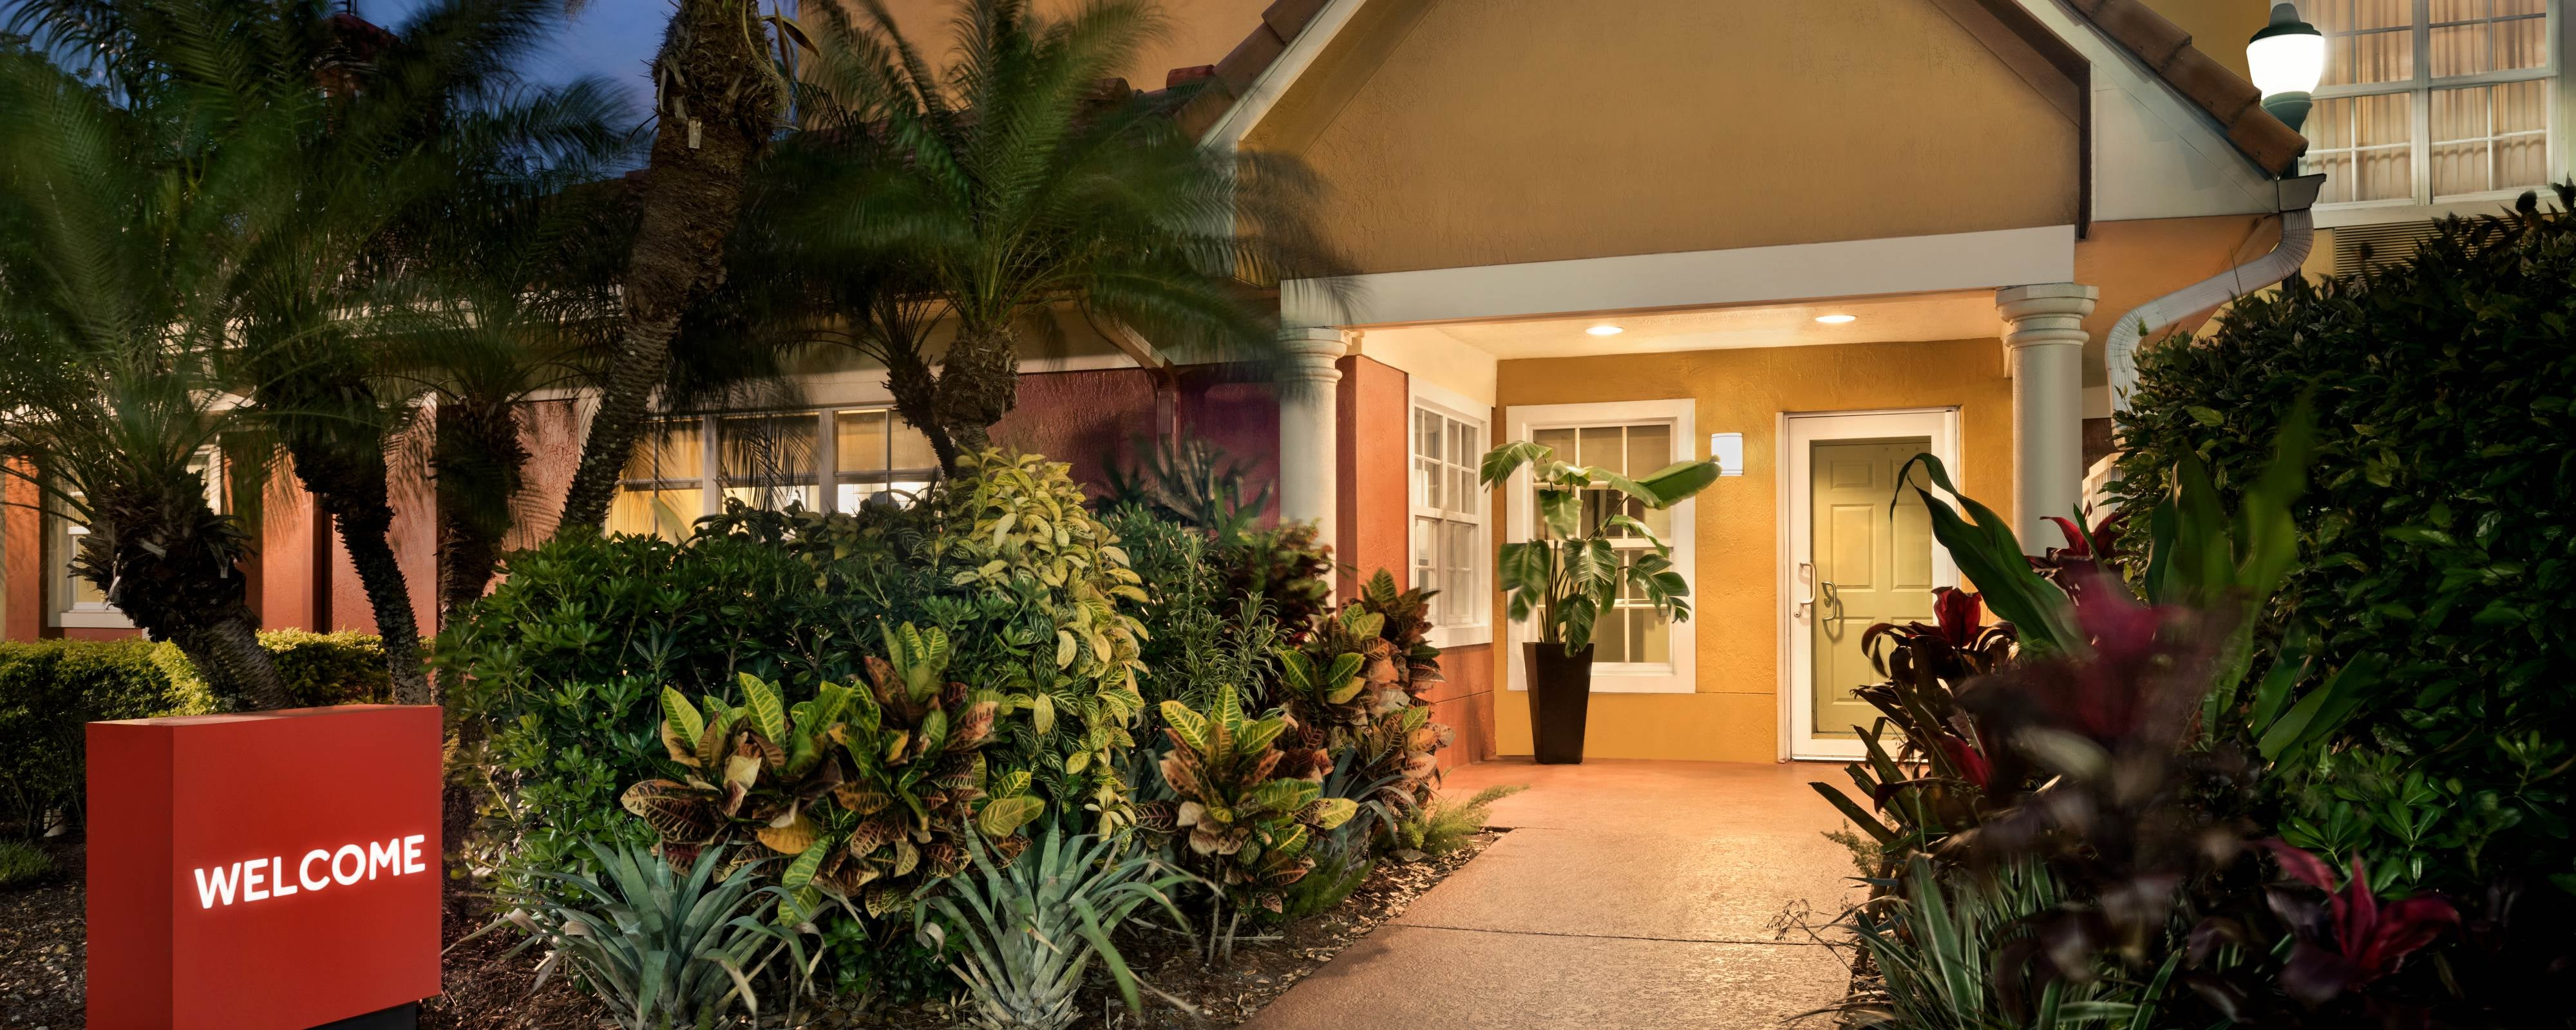 Fort Lauderdale hotels – TownePlace Suites Fort Lauderdale West ...